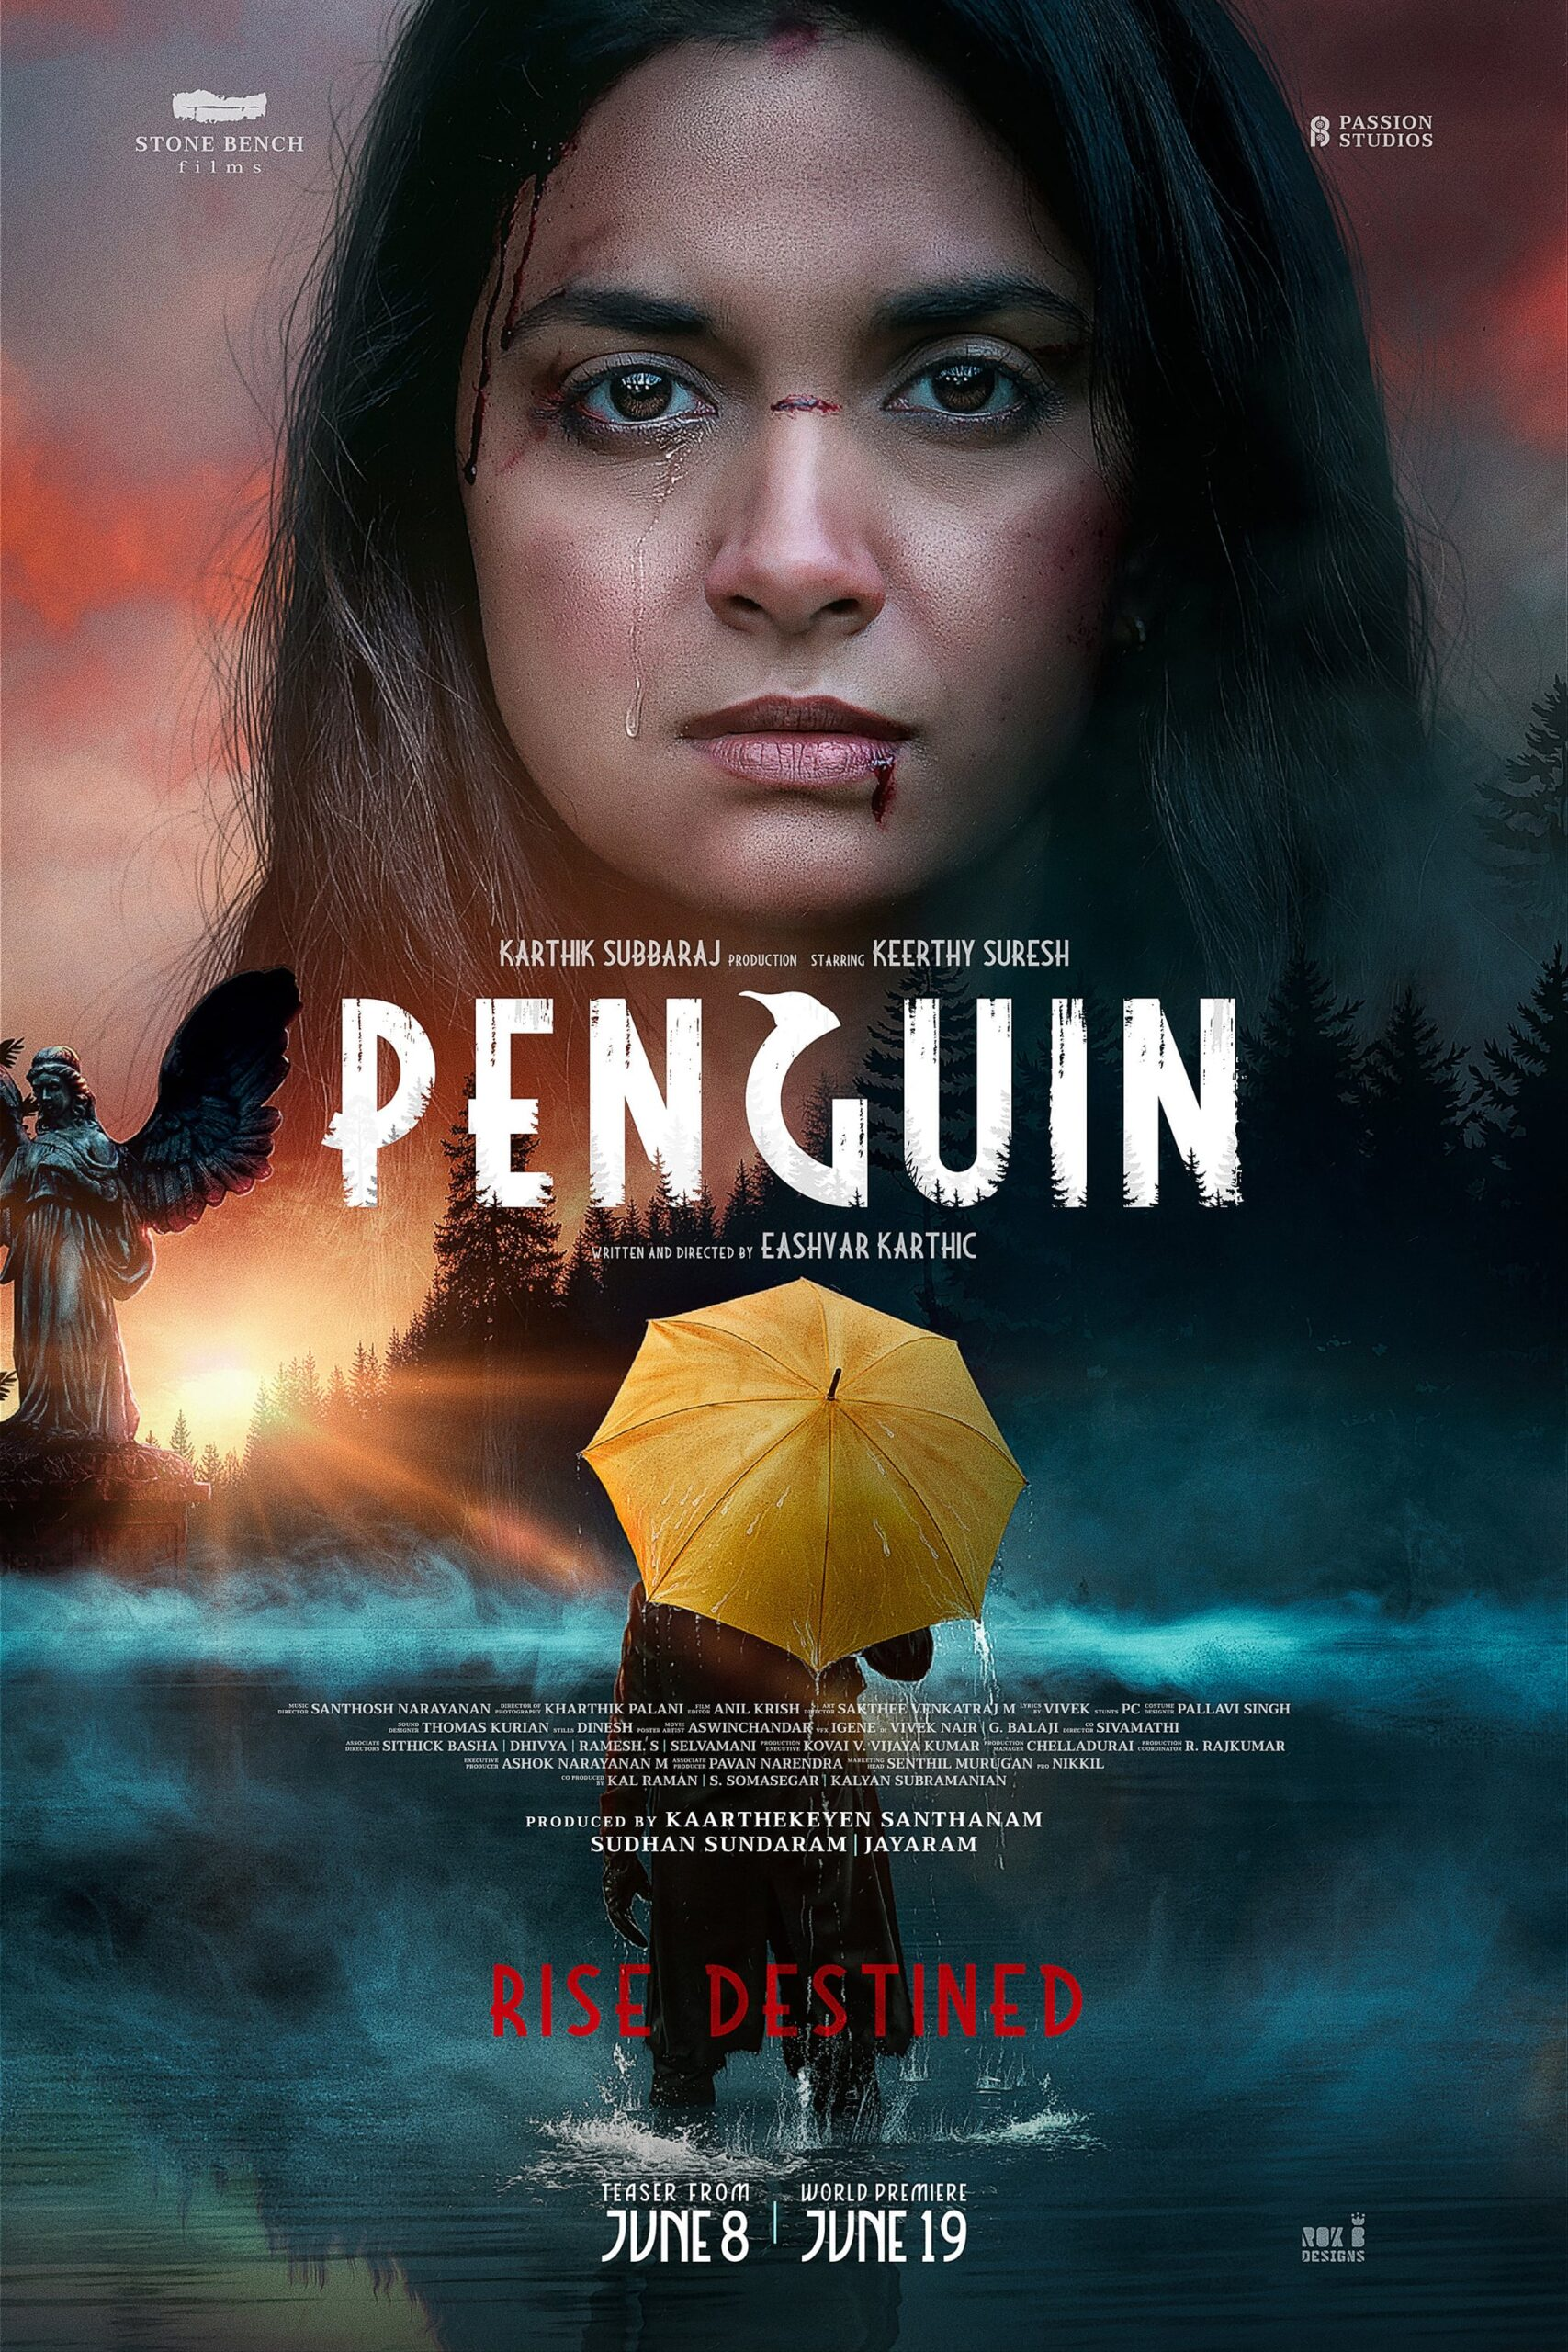 Penguin Movie Streaming Online Watch on Amazon